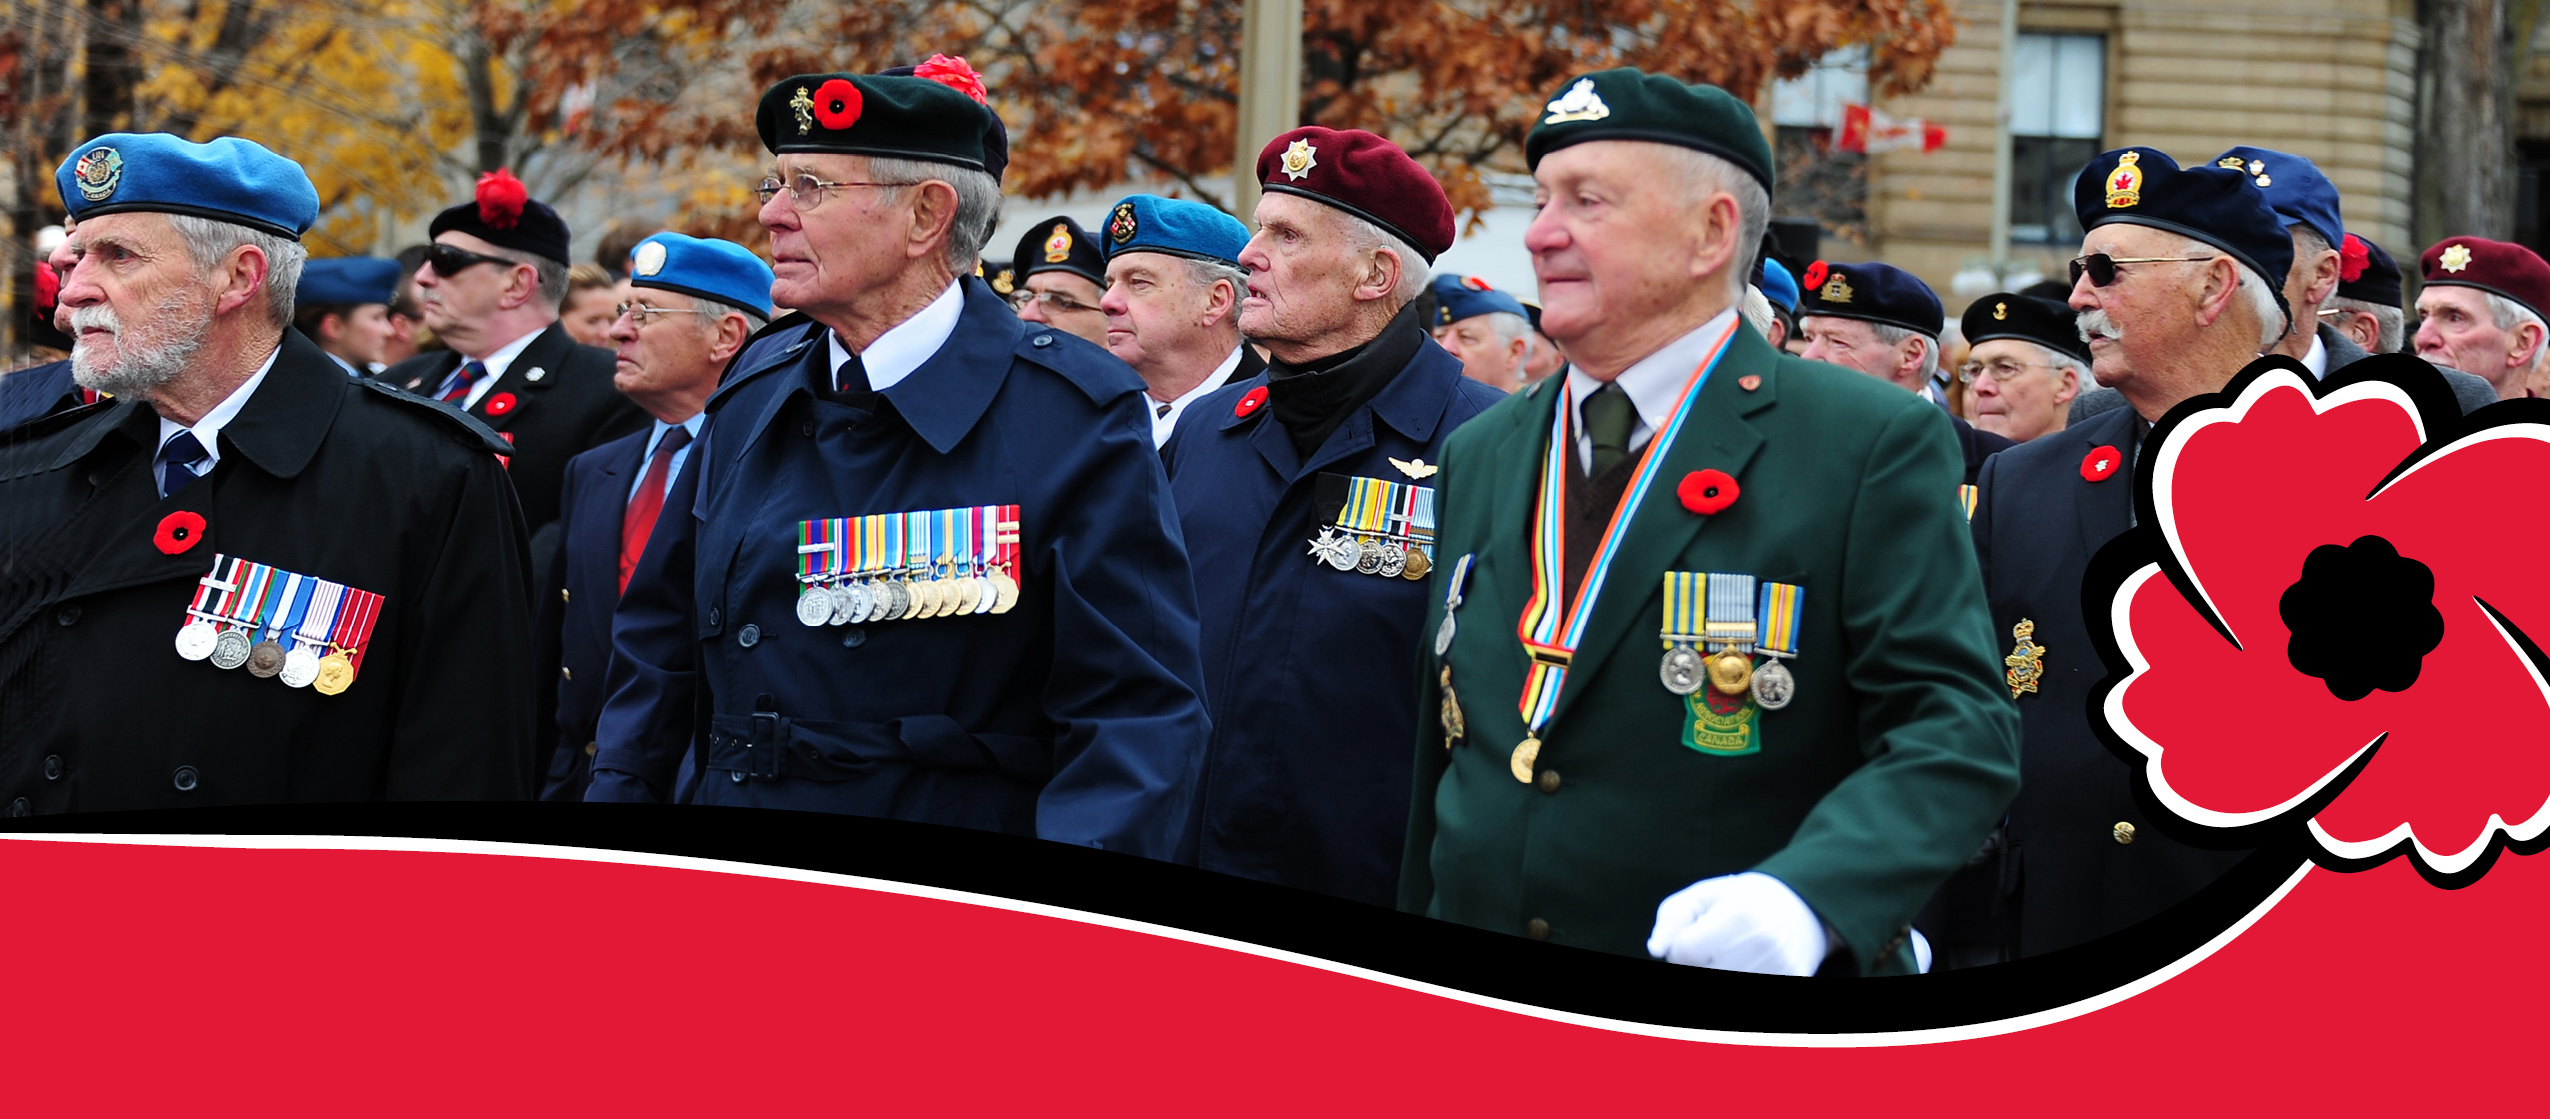 <!--:en-->Canadians Wear a Poppy to Remember<!--:-->